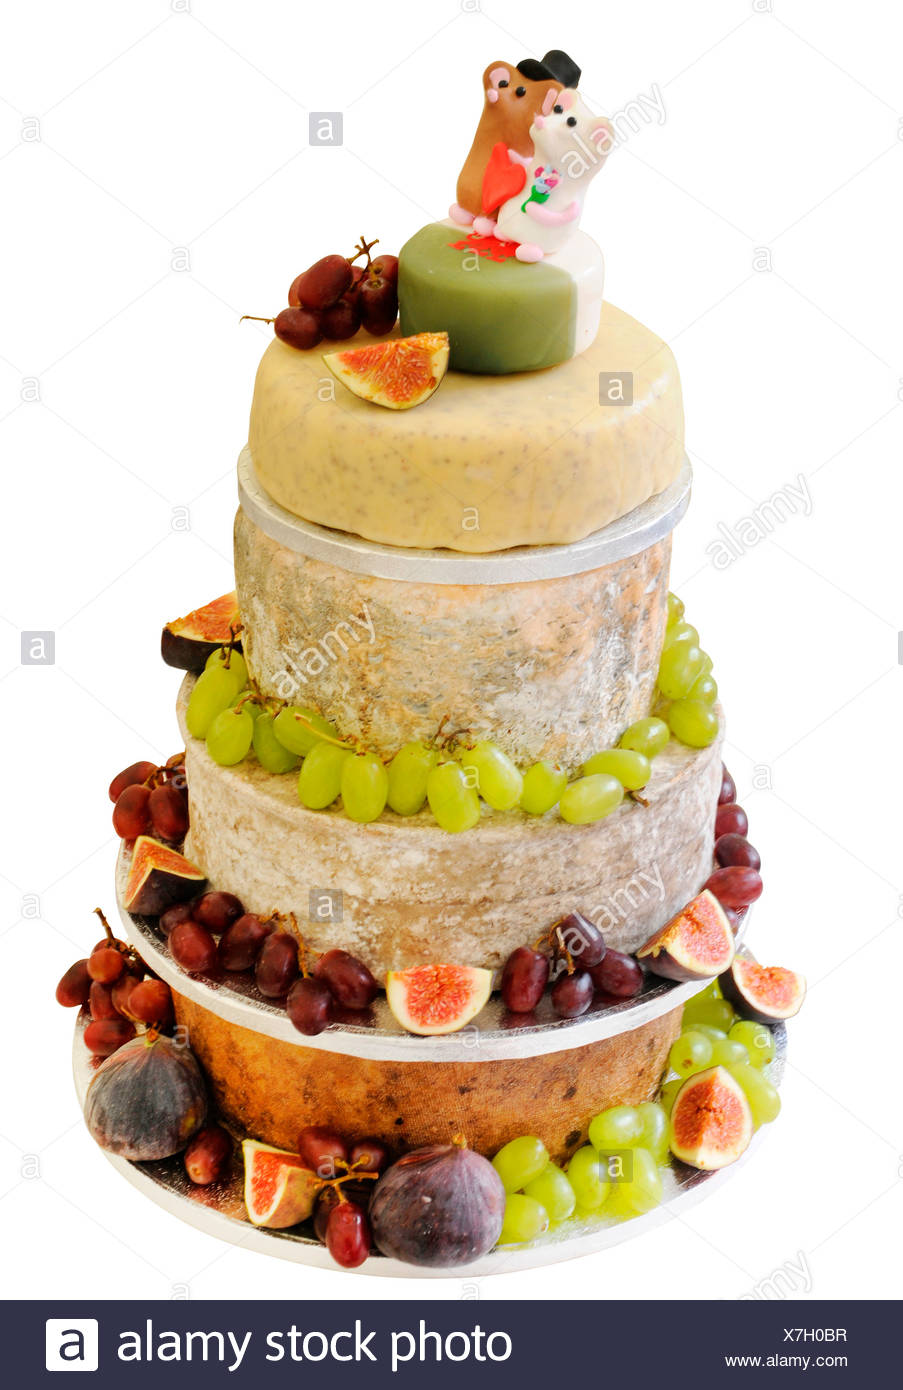 CUT OUT OF CHEESE CELEBRATION WEDDING CAKE Stock Photo: 280041995 ...